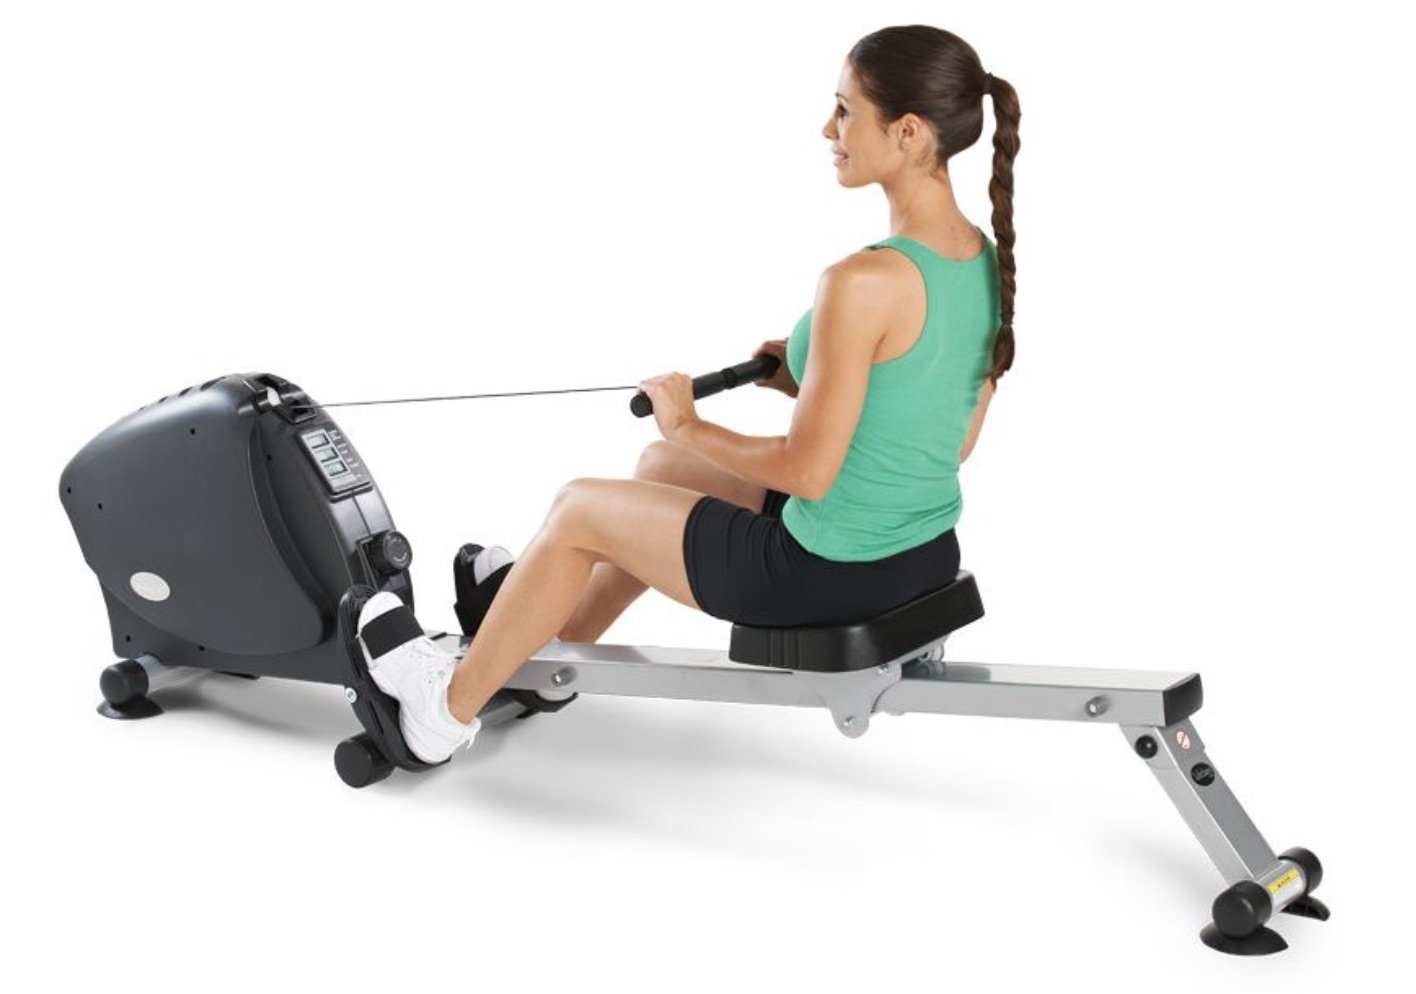 LifeSpan RW1000 Rowing Machine Quality